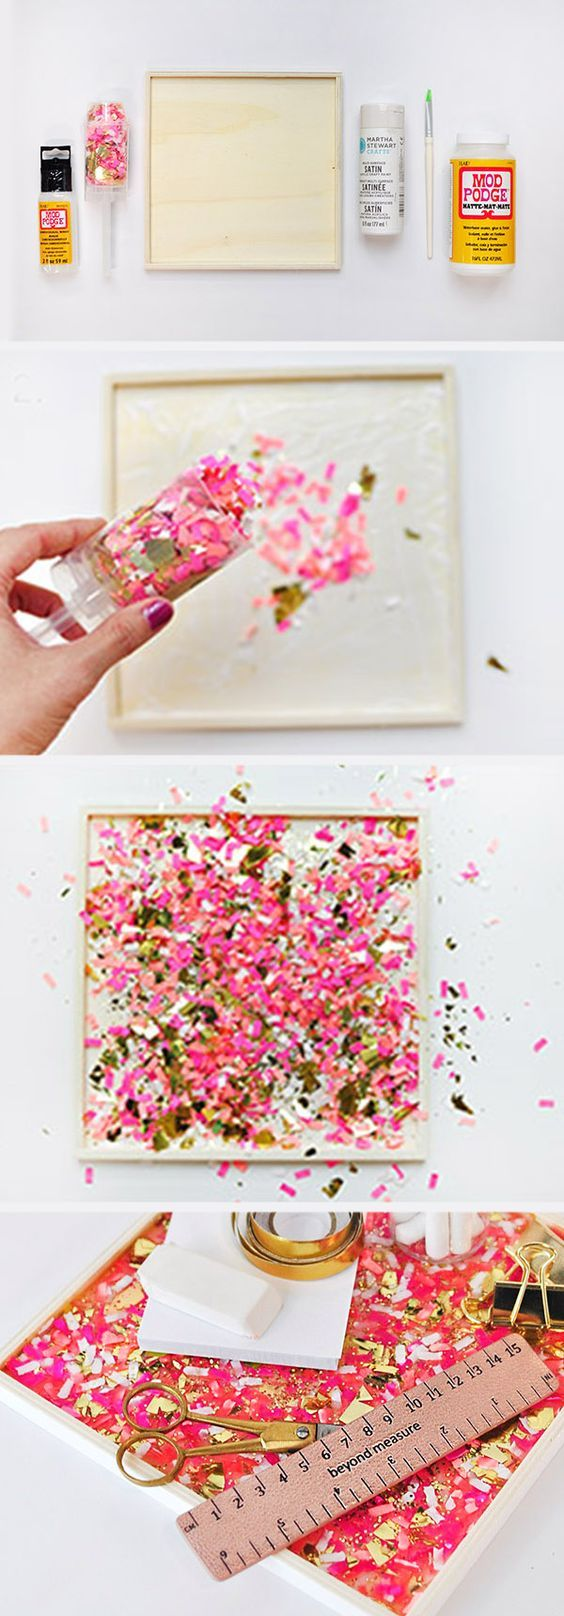 DIY Confetti Tray | 14 Cheap But Cute Dorm Room DIYs | http://www.hercampus.com/diy/decorating/14-cheap-cute-dorm-room-diys